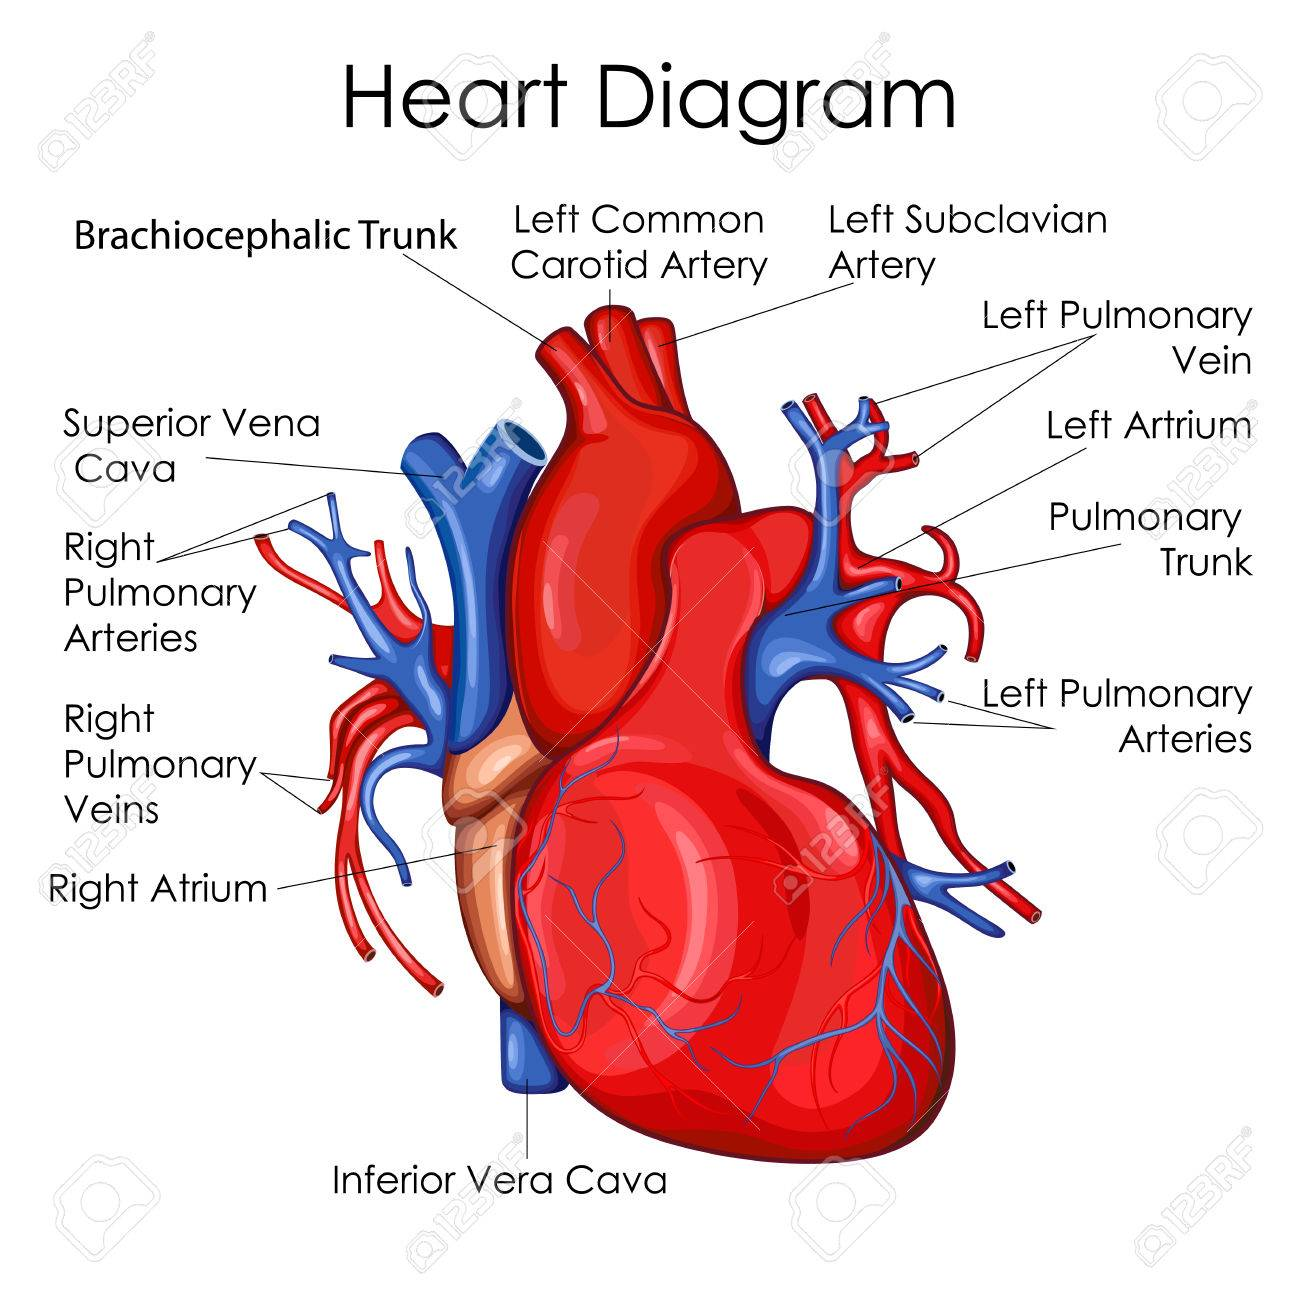 medical education chart of biology for heart diagram  vector illustration   stock vector - 79651874